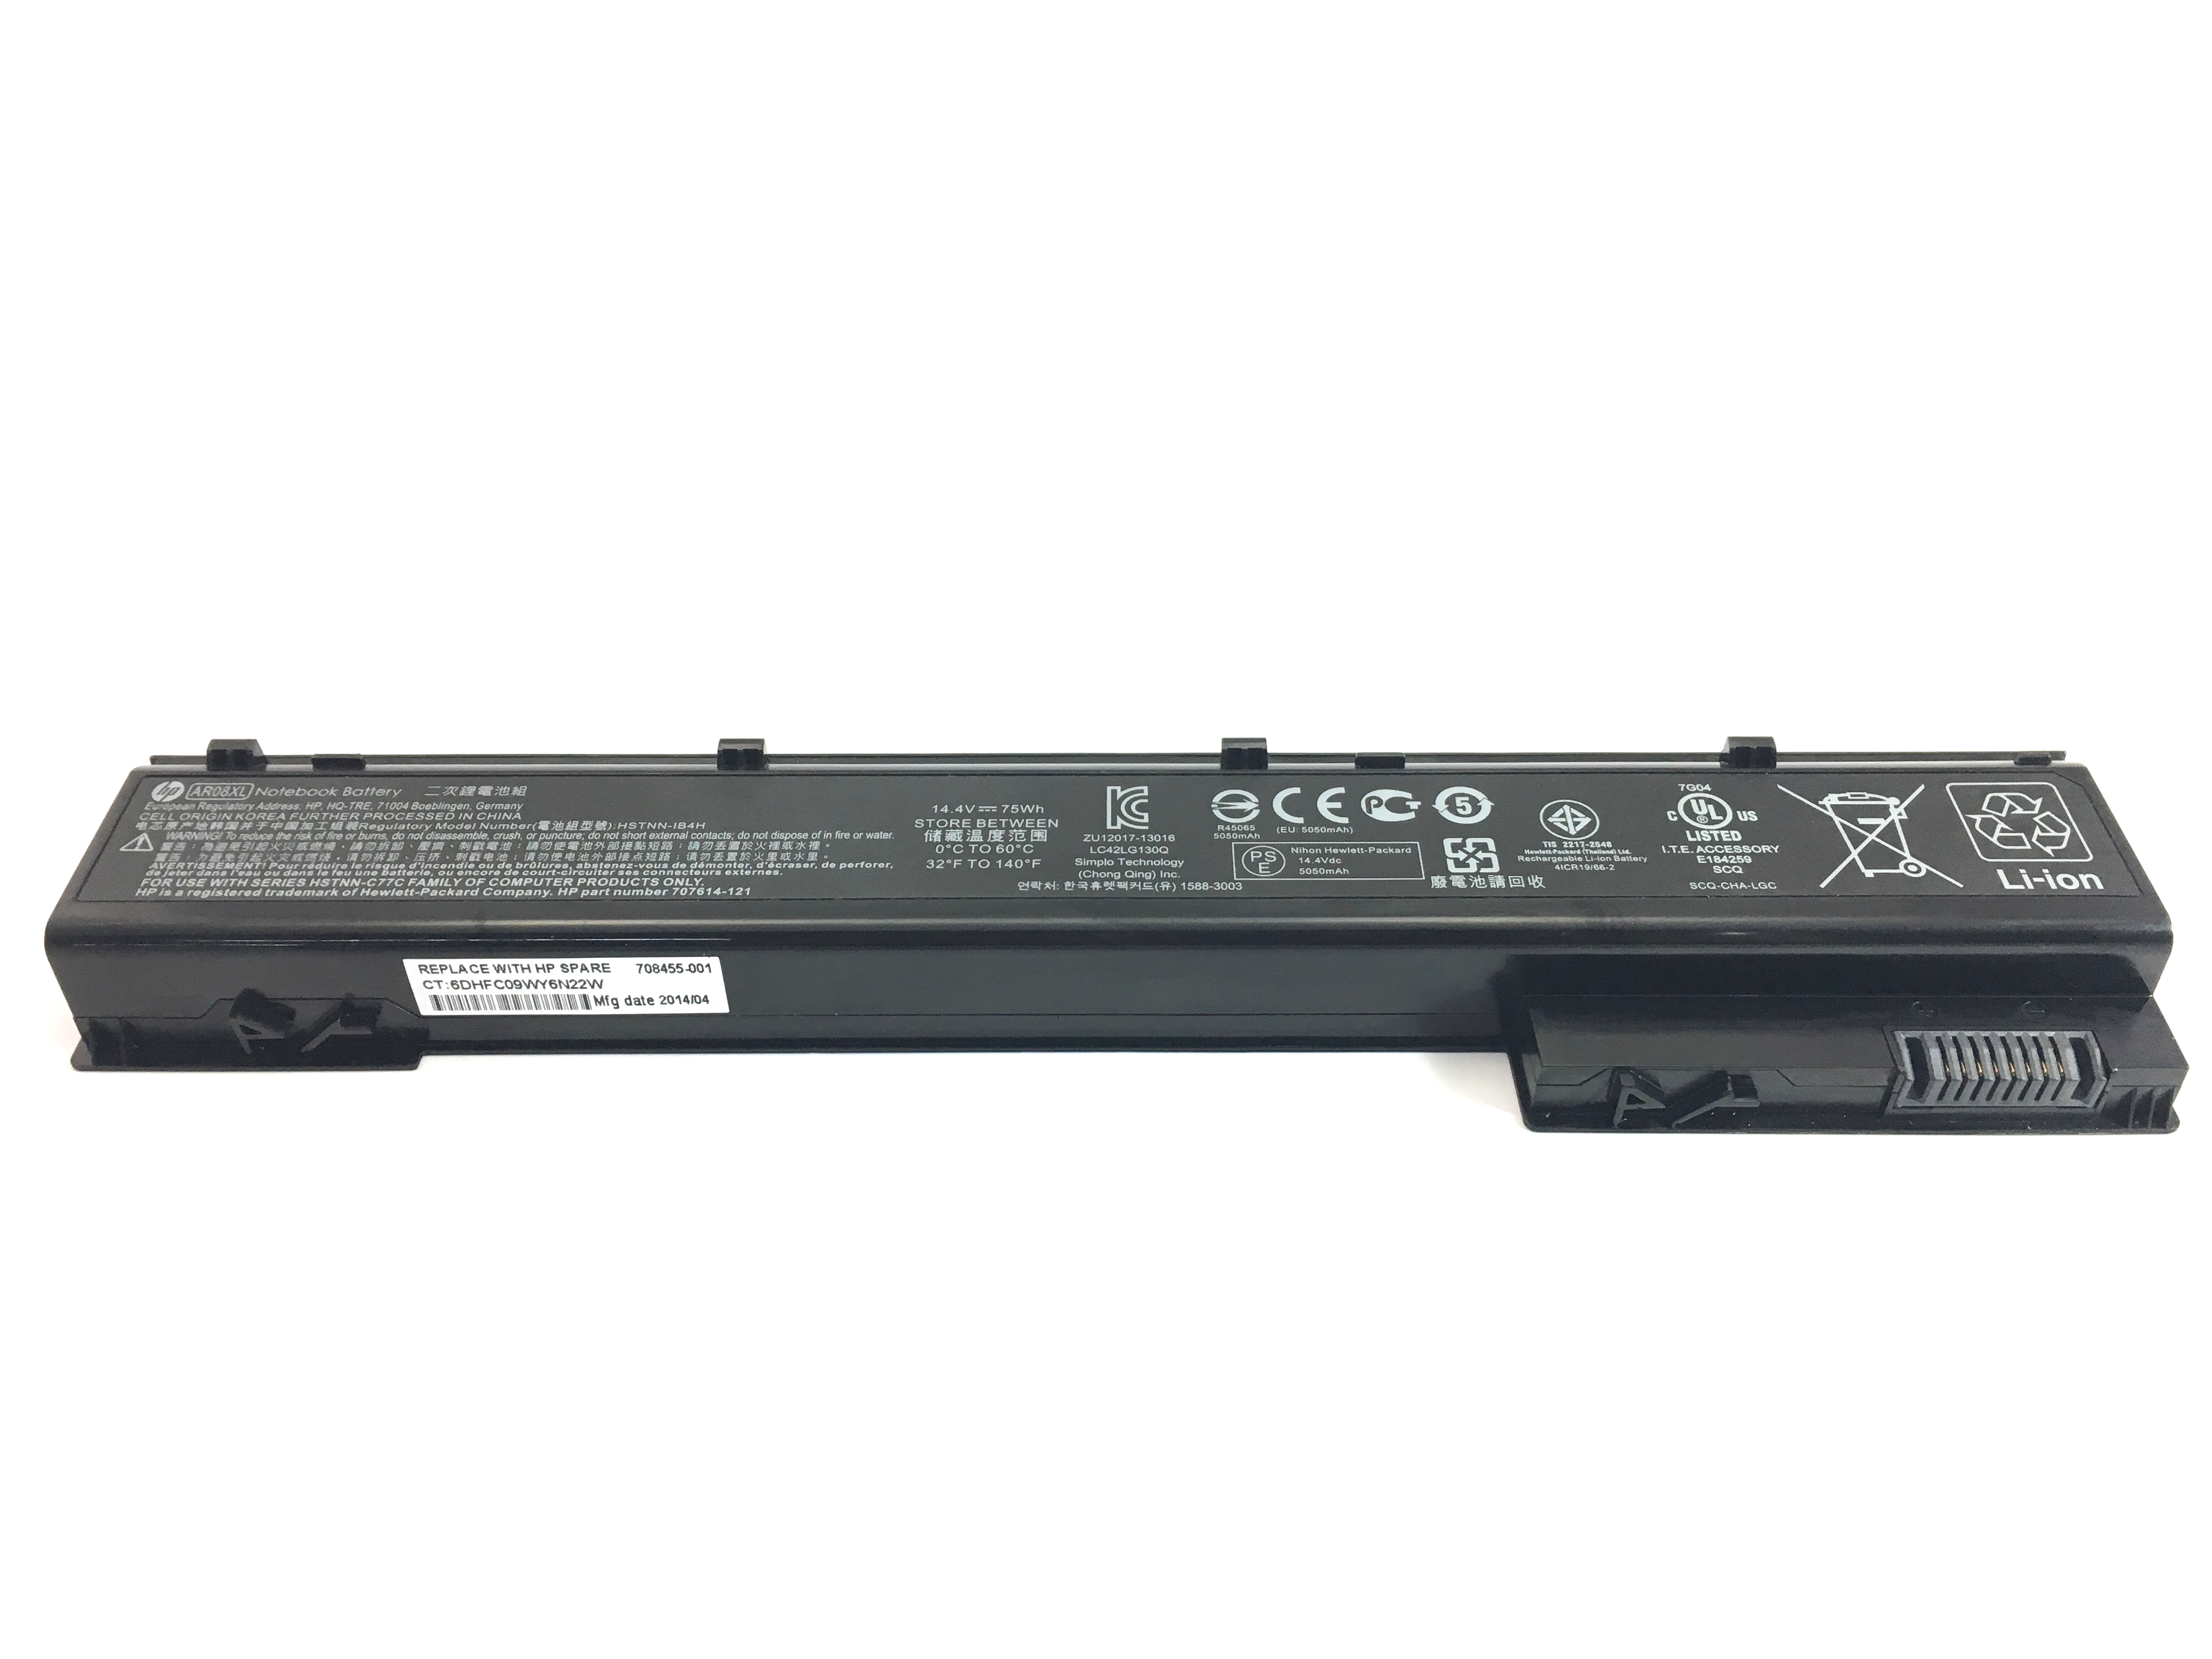 HP Zbook 75Wh Laptop Battery (708455-001)